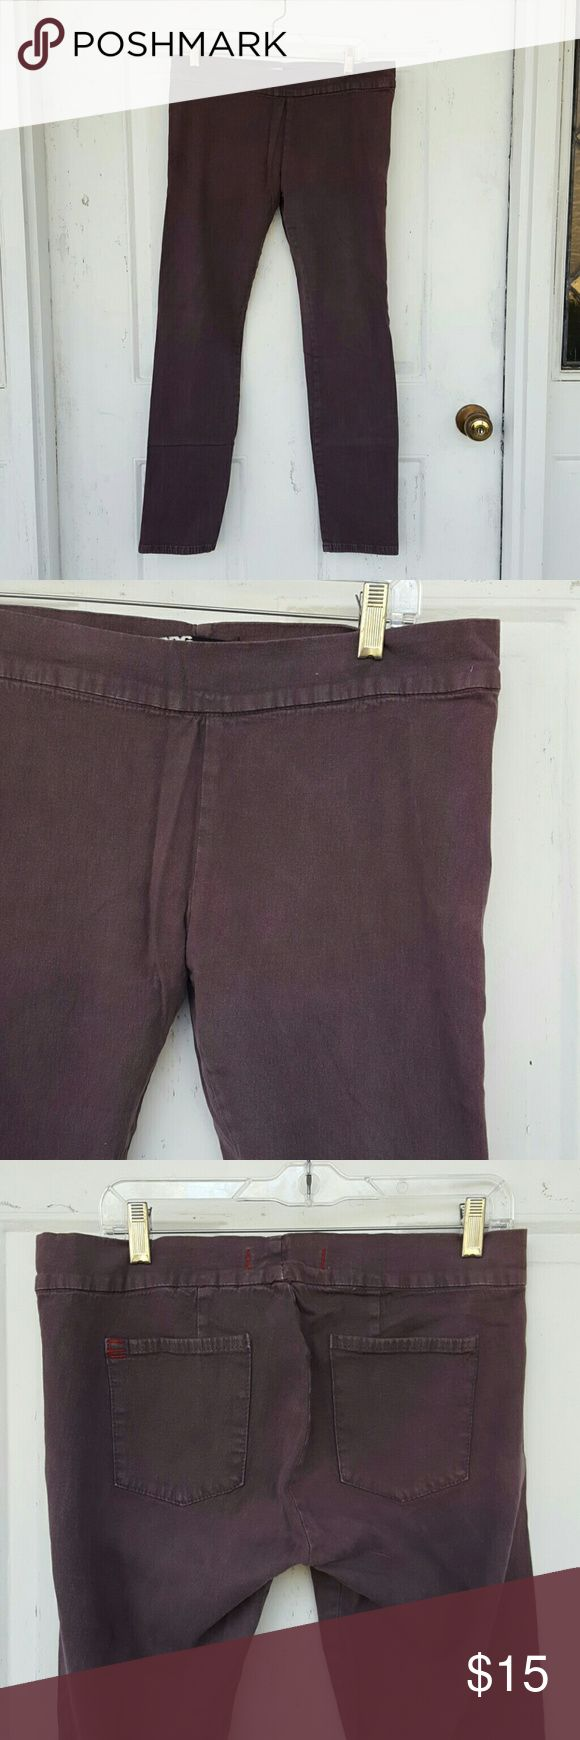 Urban Outfitters Jeggings Gently worn BDG Jeggings from Urban Outfitters.  Color is slightly purple.  Cotton/spandex blend. Urban Outfitters Pants Leggings